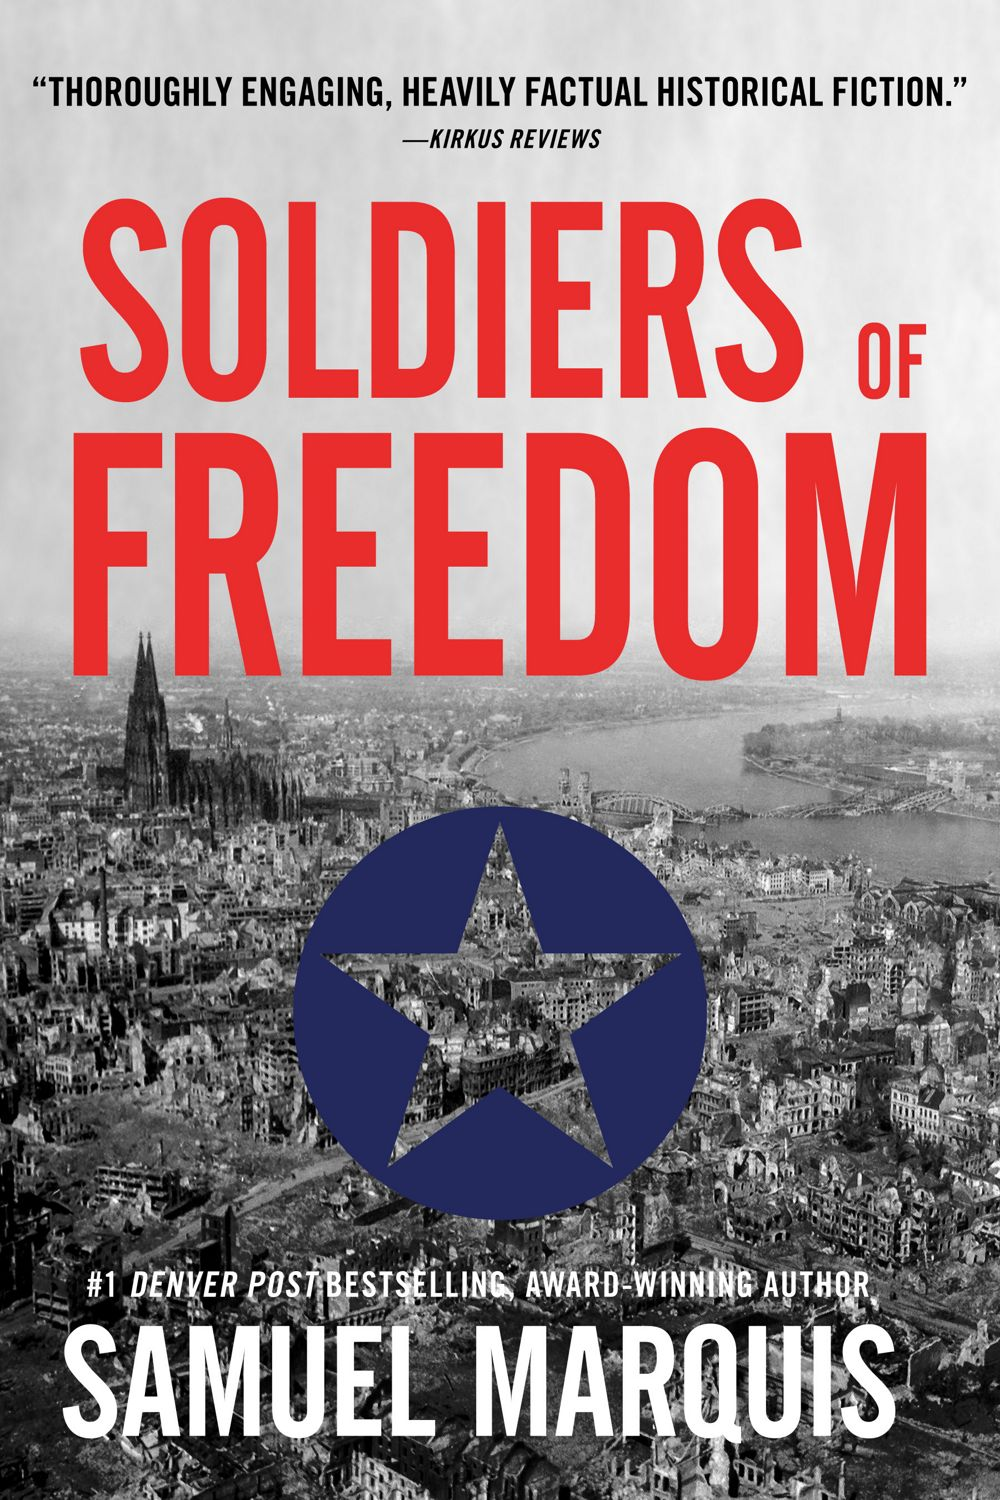 Guest Post from Samuel Marquis Author  of Soldiers of Freedom: The WWII Story of Patton's Panthers and the Edelweiss Pirates